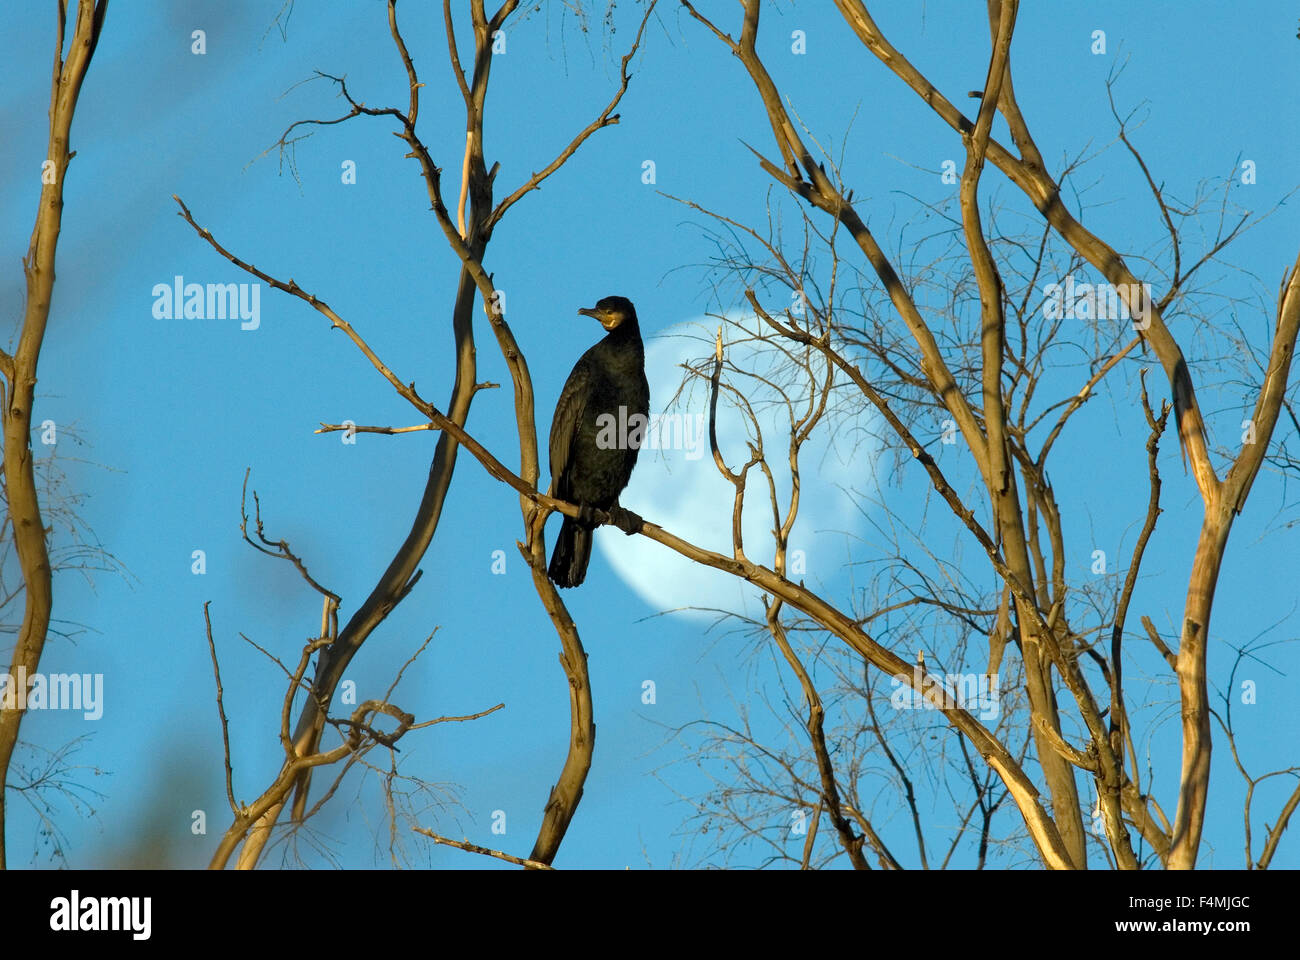 Great Cormorant (Phalacrocorax carbo) perched in dead tree with full moon behind - Stock Image